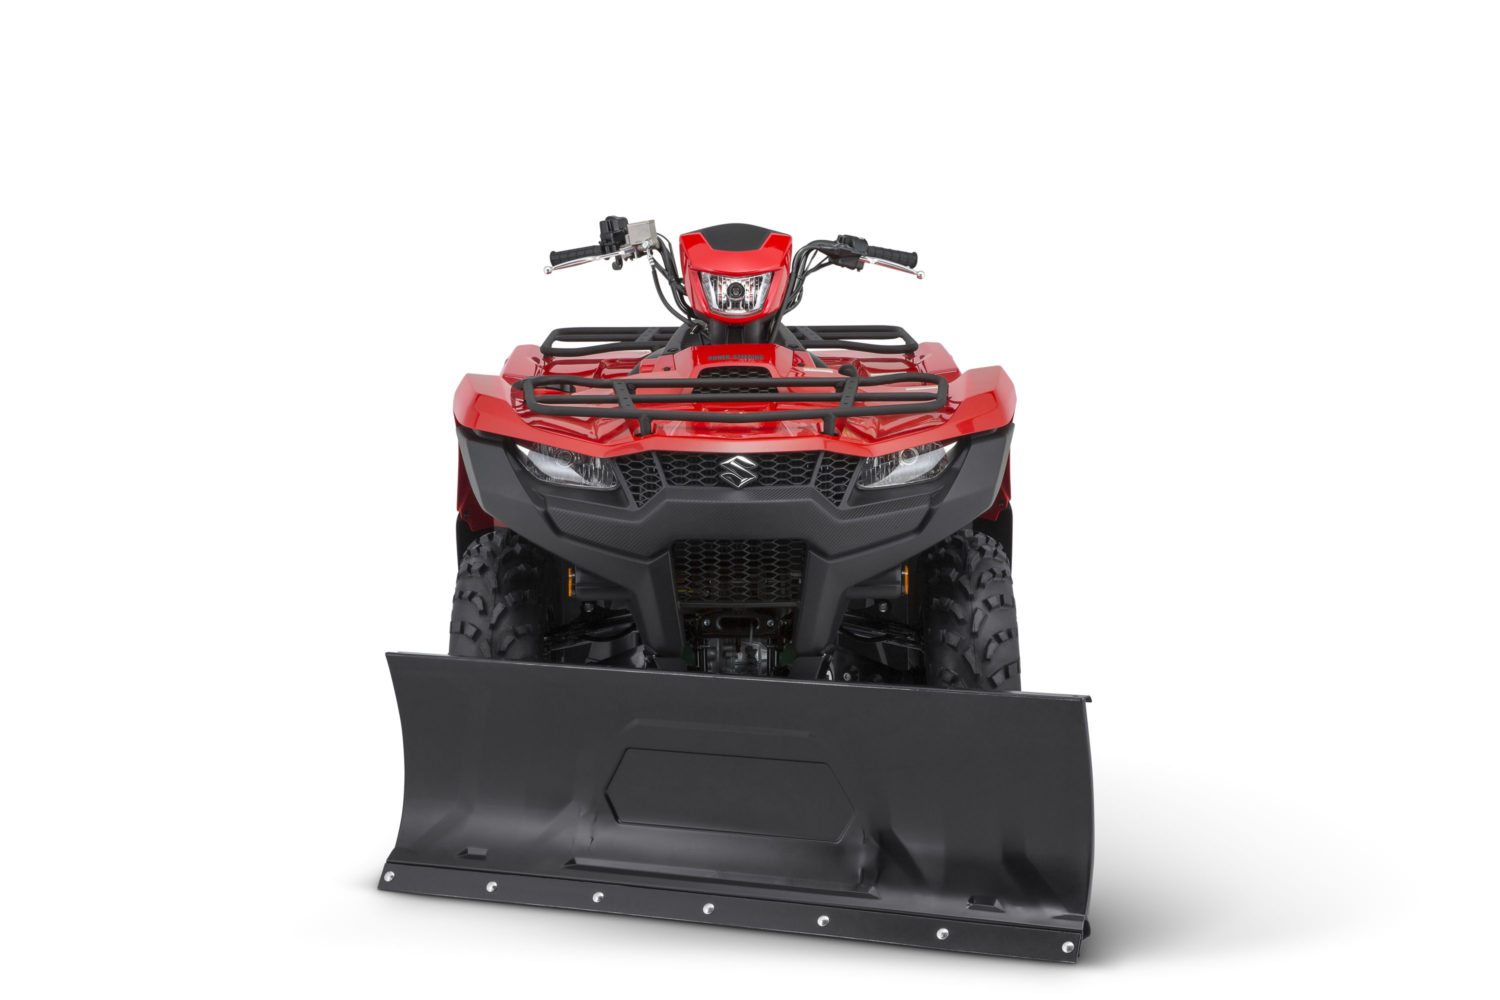 Kingquad 750/500 Front Mount Plow